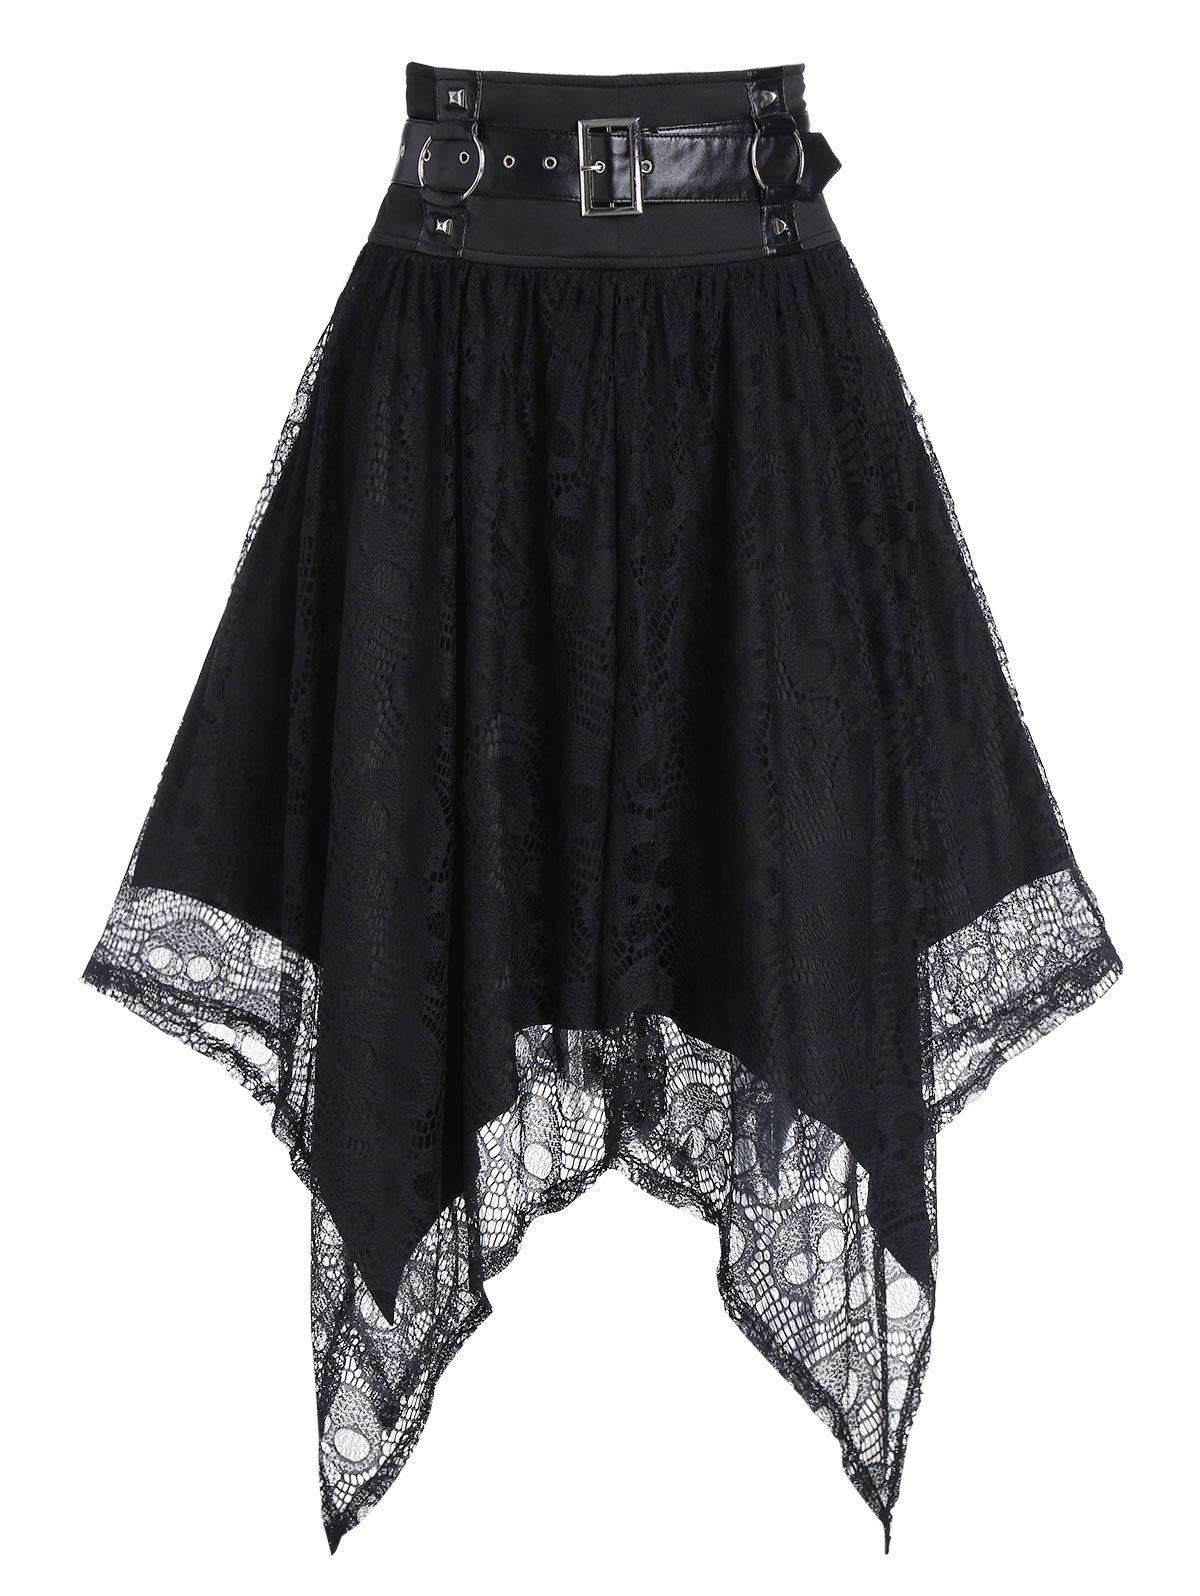 Outfit Harness Insert Halloween Skull Pattern Lace Handkerchief Gothic Skirt